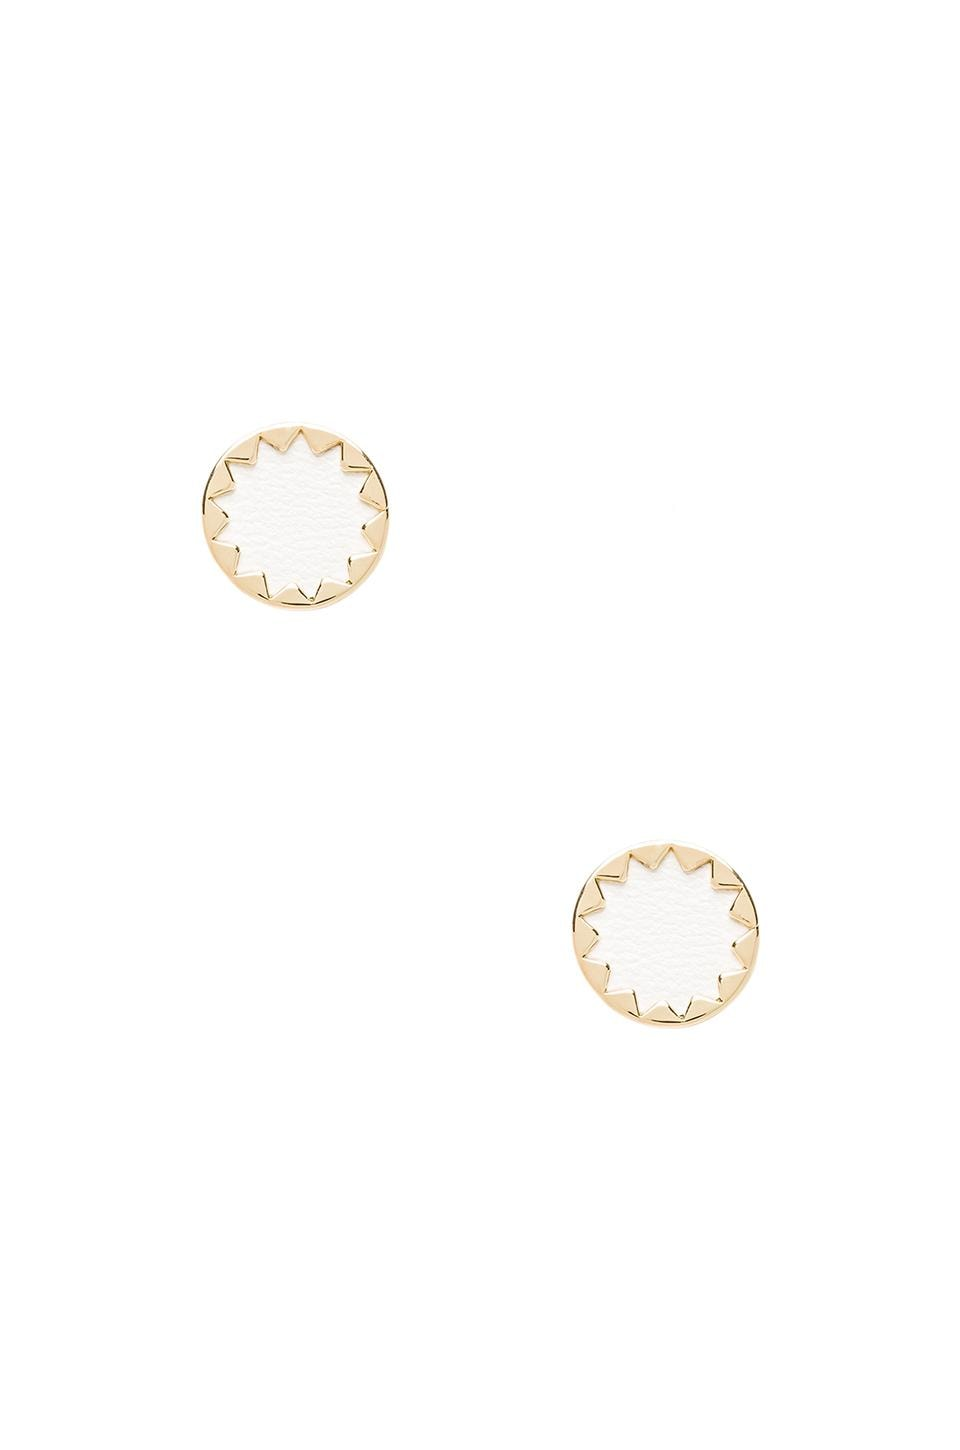 House of Harlow 1960 House of Harlow Sunburst Button Earrings in White